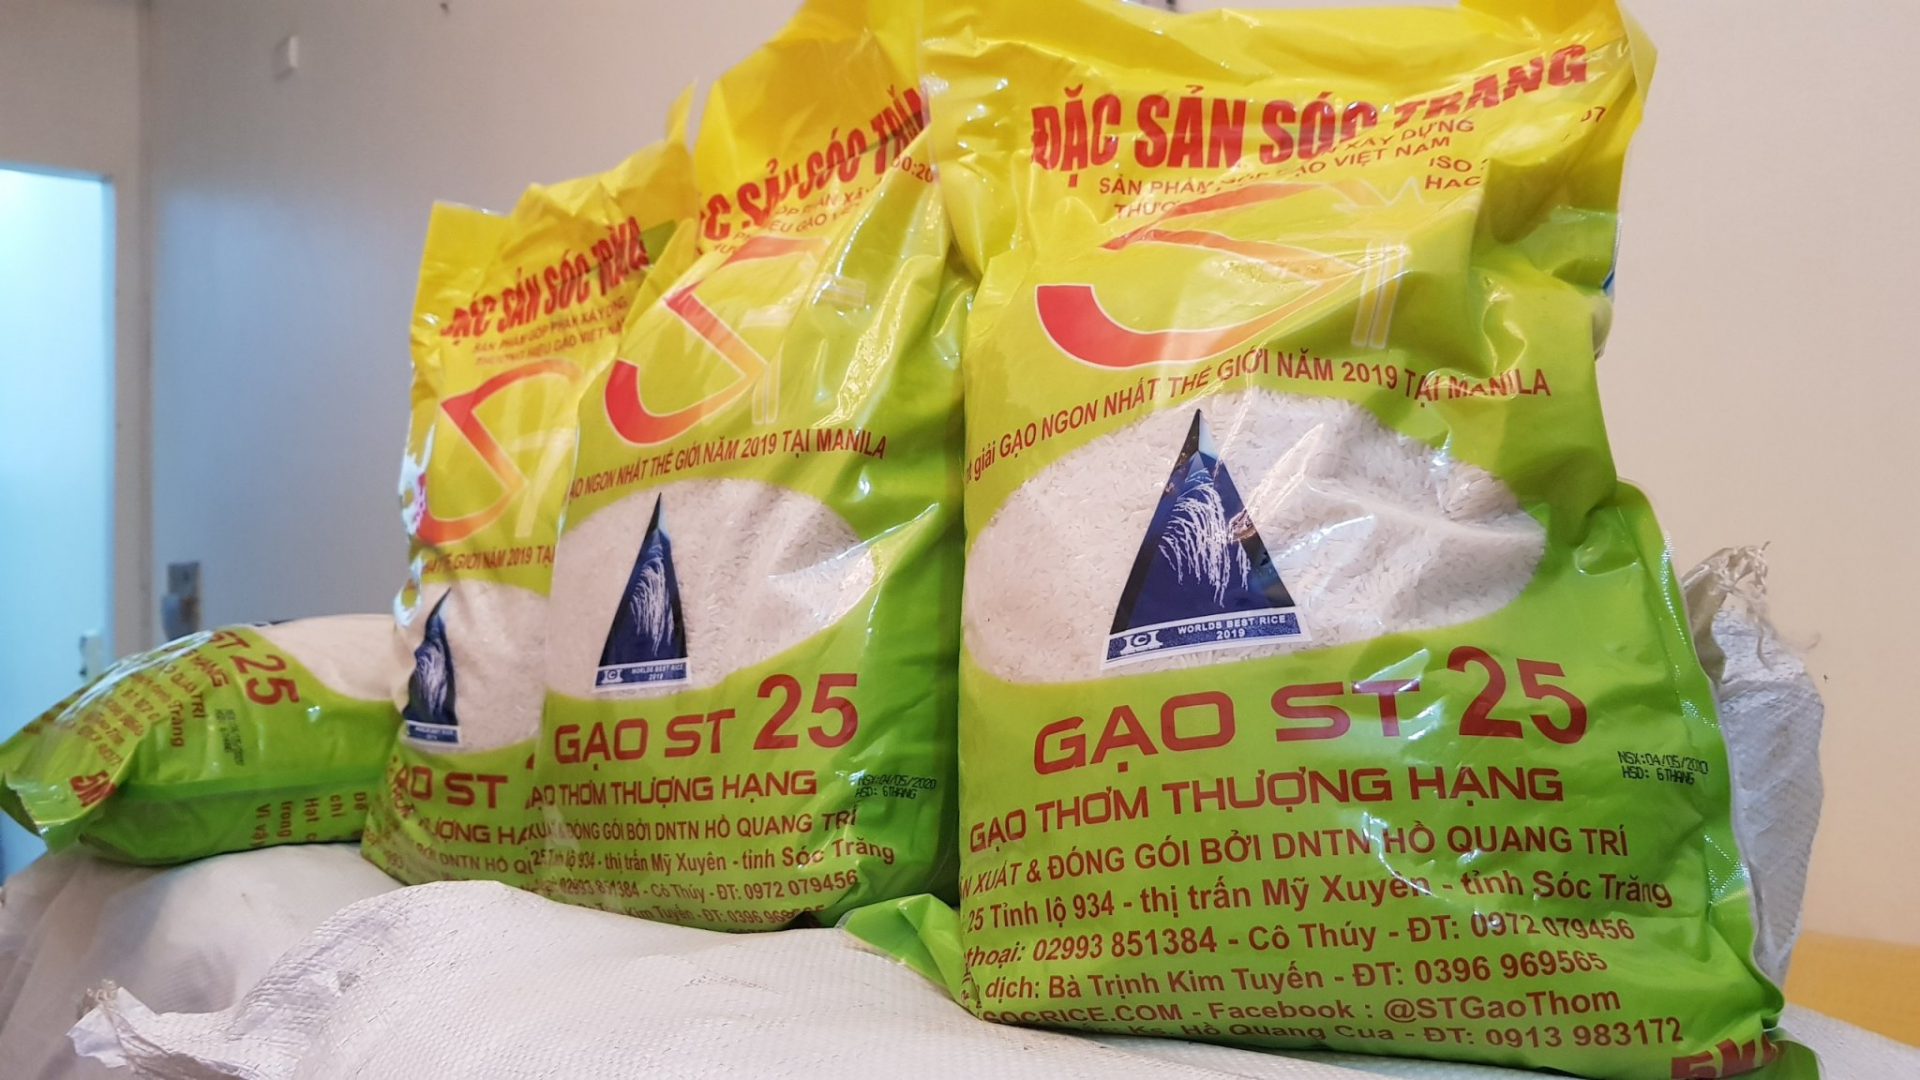 Foreign firms register trademark protection for Vietnamese rice in U.S